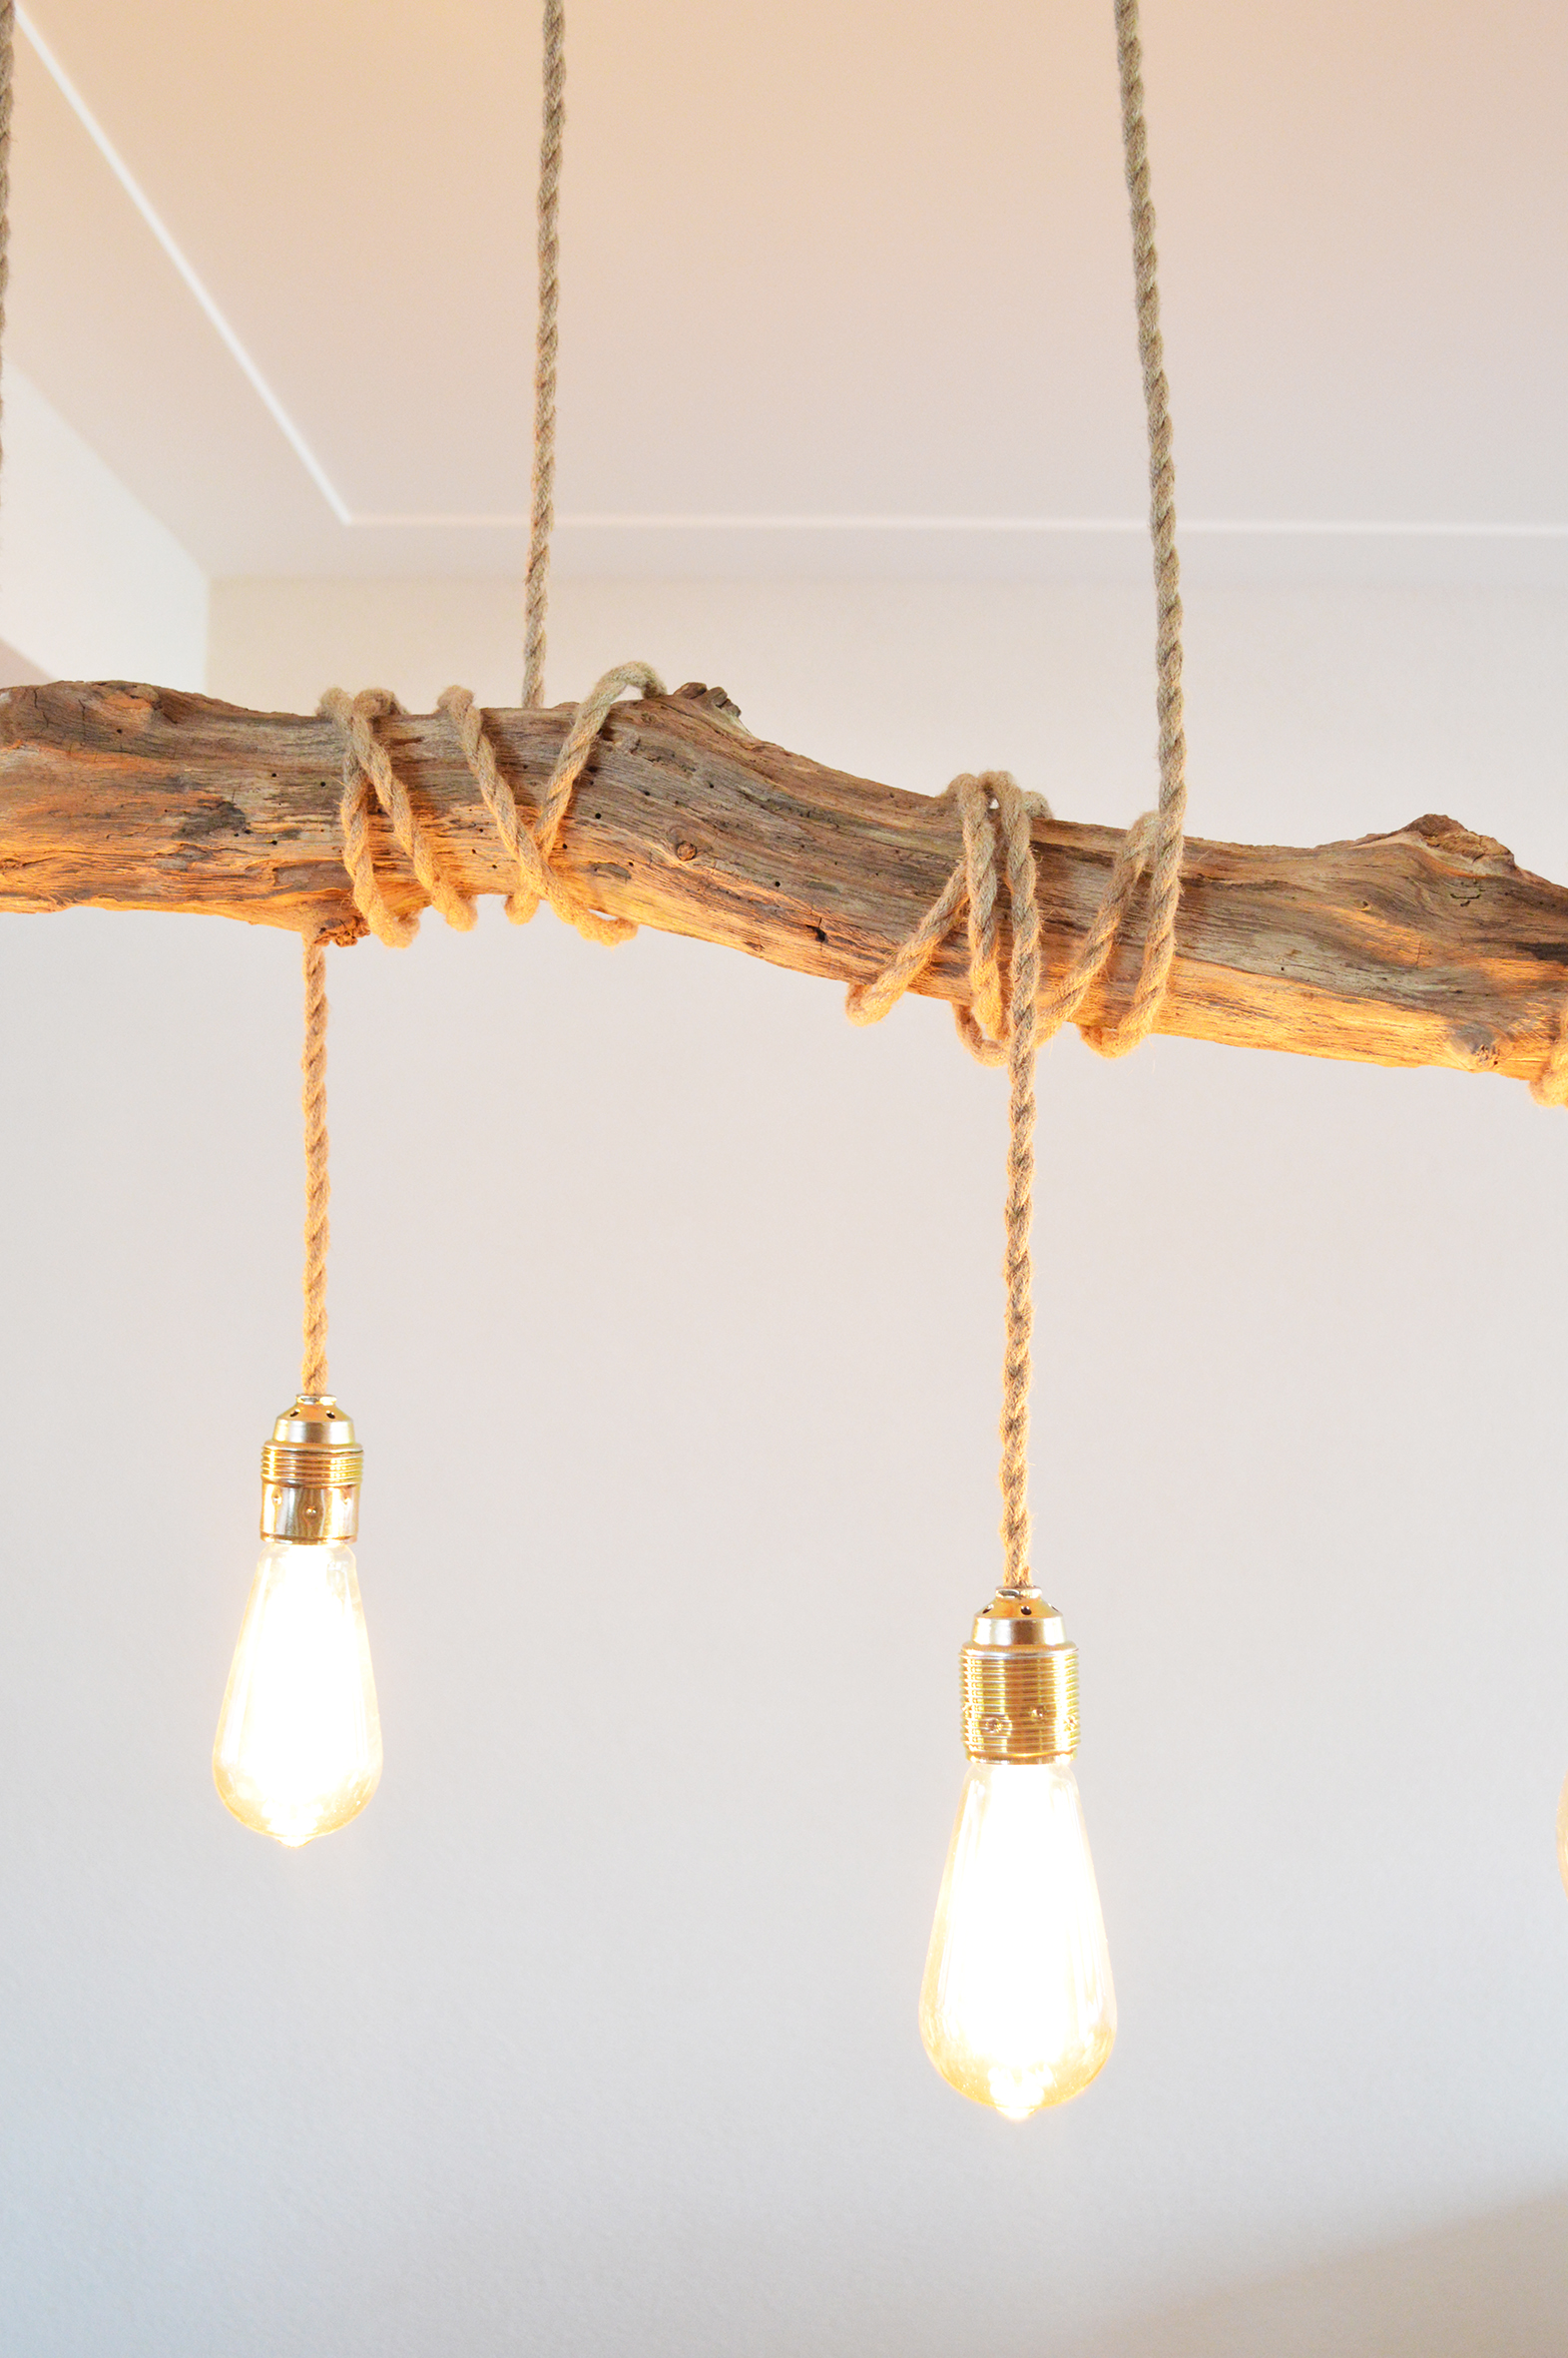 Metalen Fitting Apesso | Houten Boomstronk Hanglamp - Thomaswood